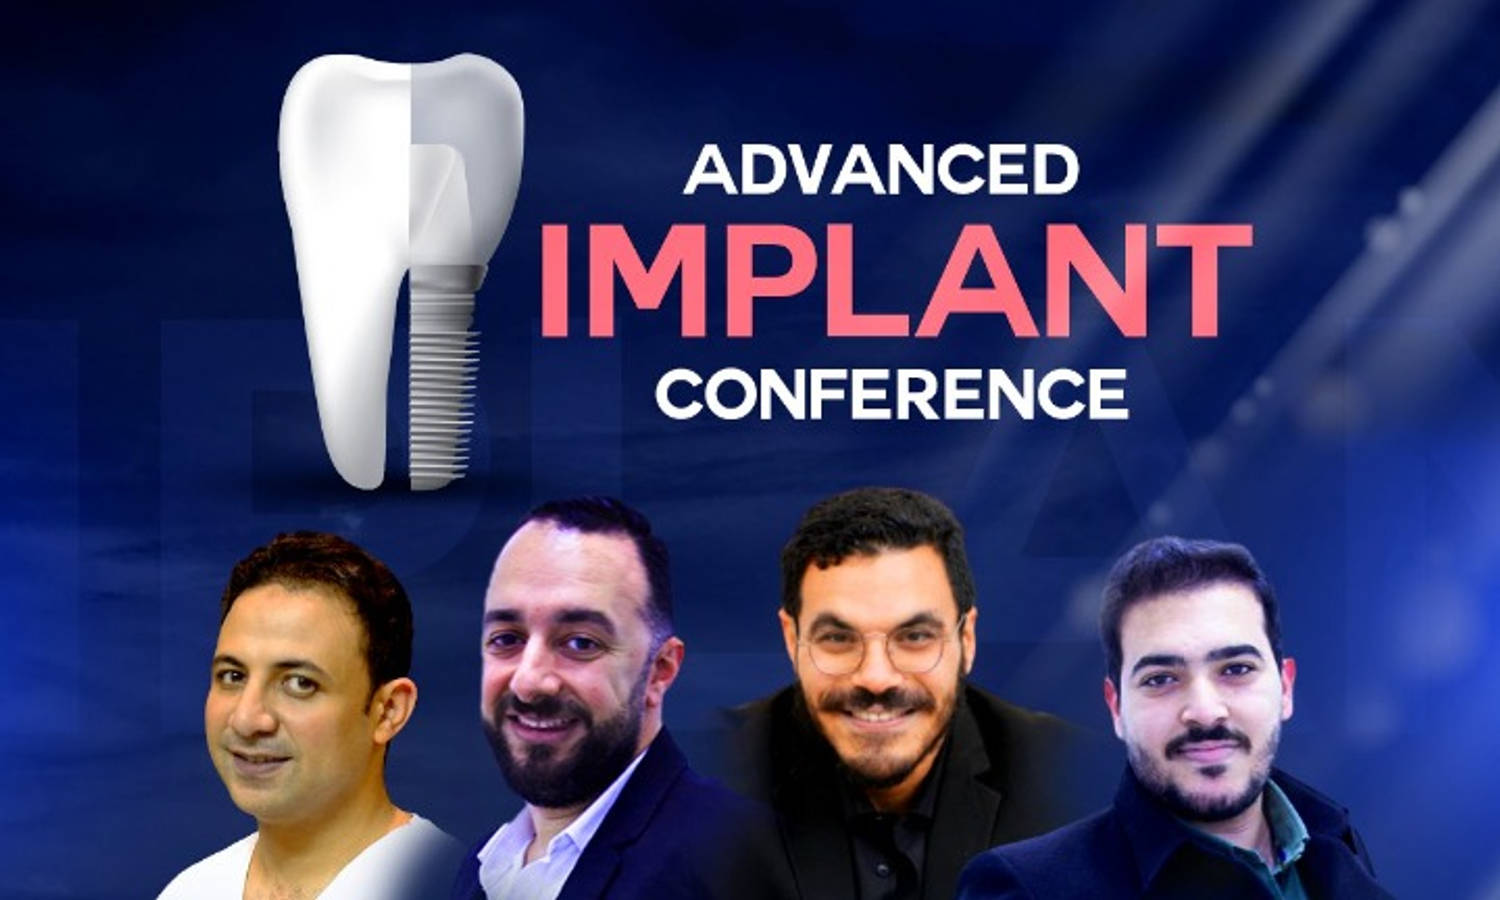 Advanced Implant Conference